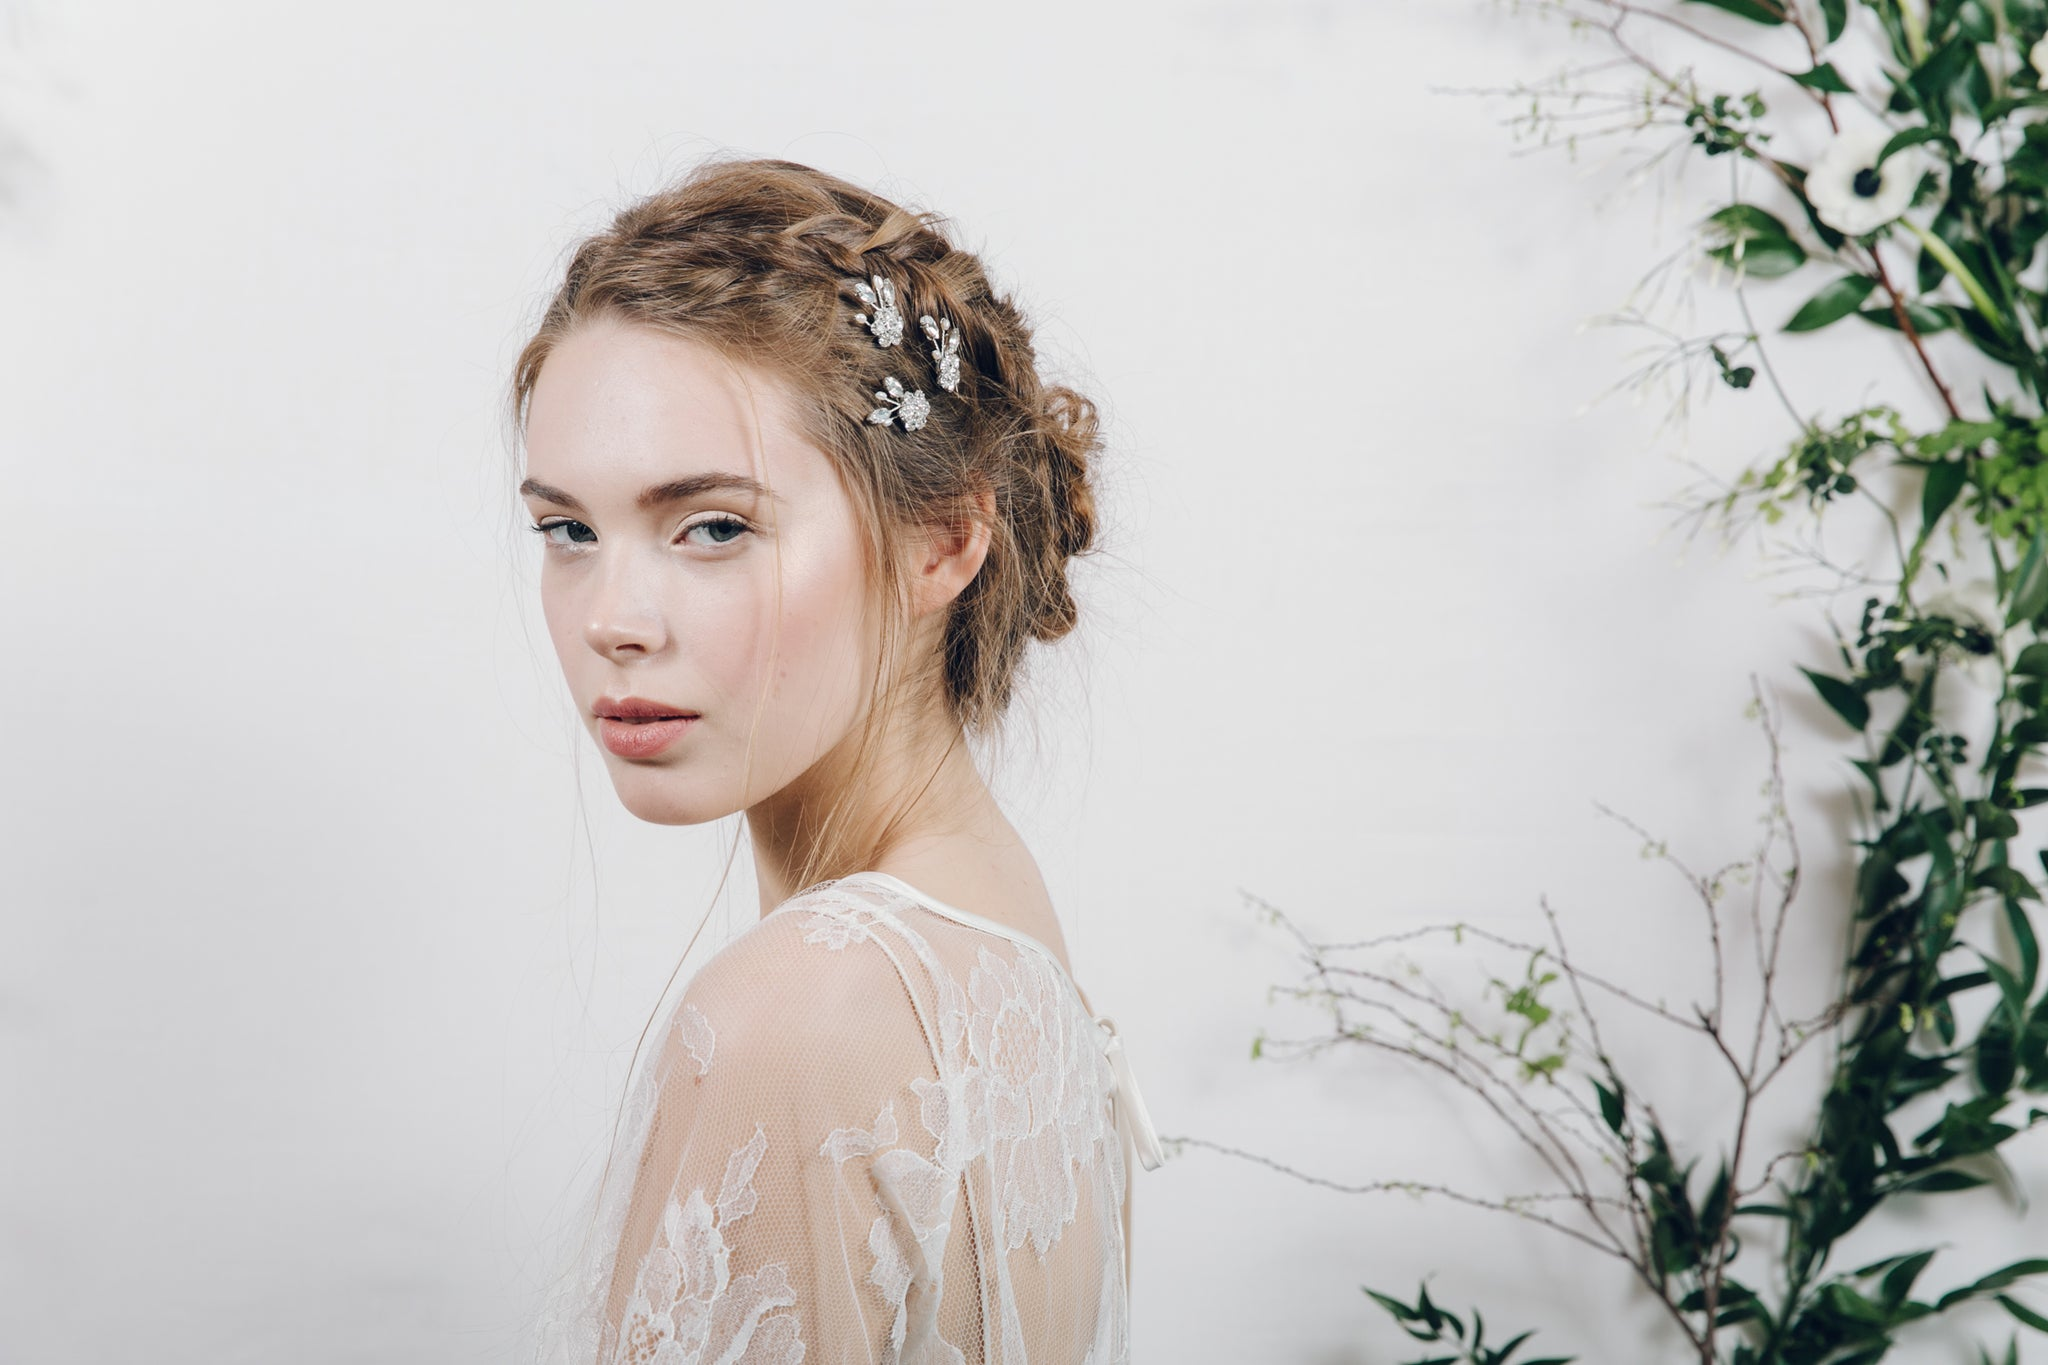 Set of three medium floral wedding hairpins in the side of an updo